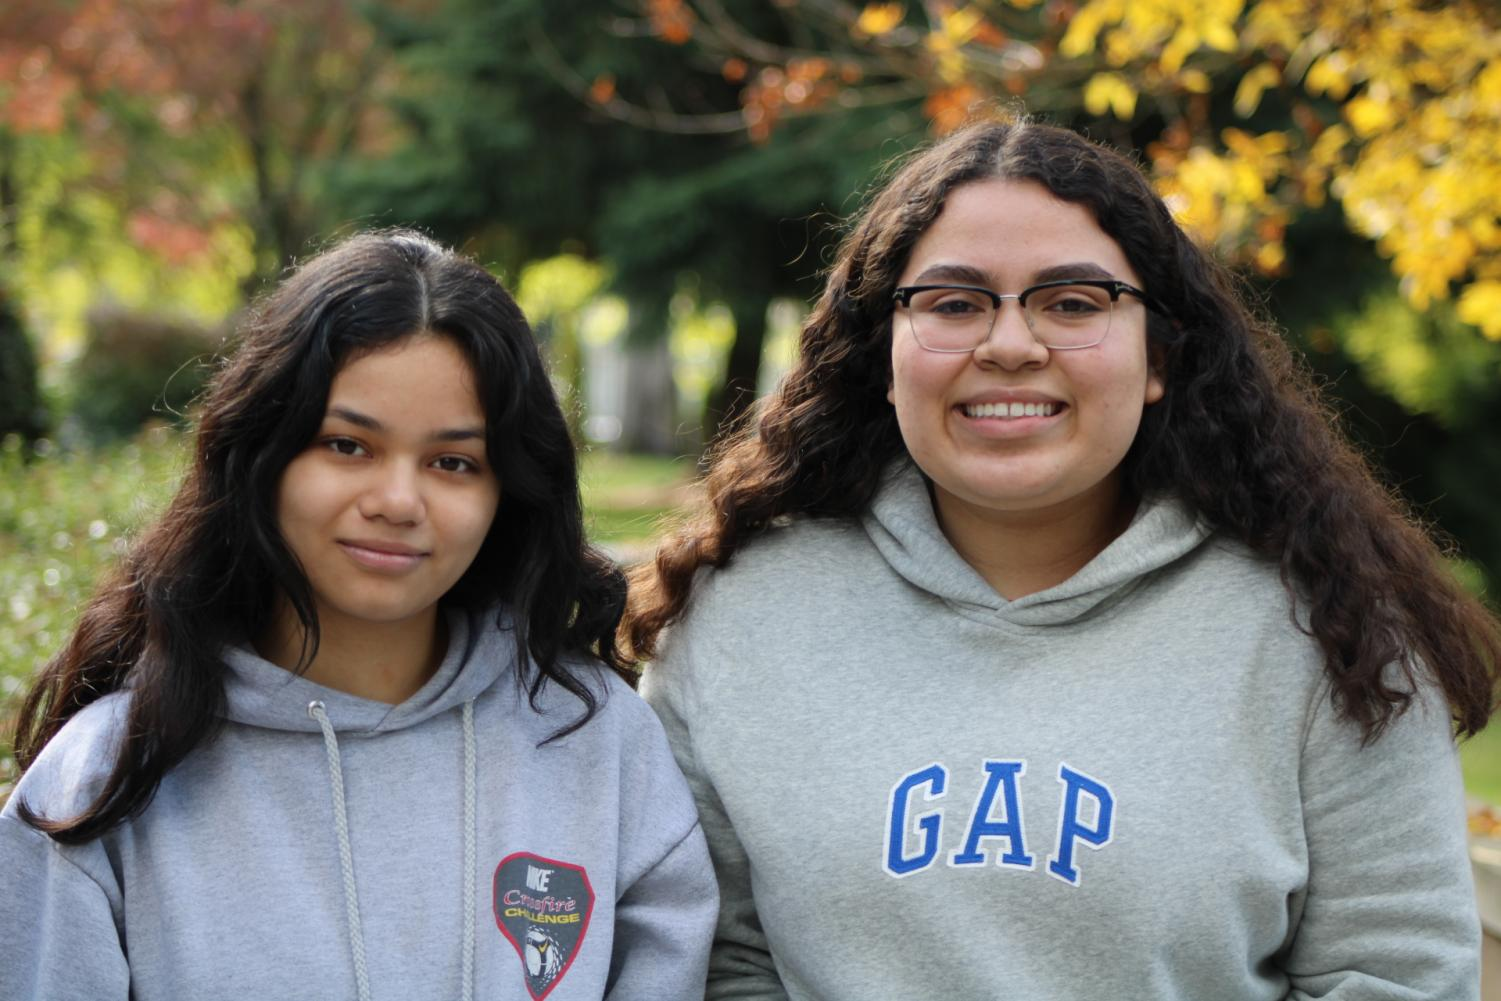 Sophomore Jimena Alarcon (left) and senior Vanessa Morales (right) pose for a picture outside of Inglemoor.